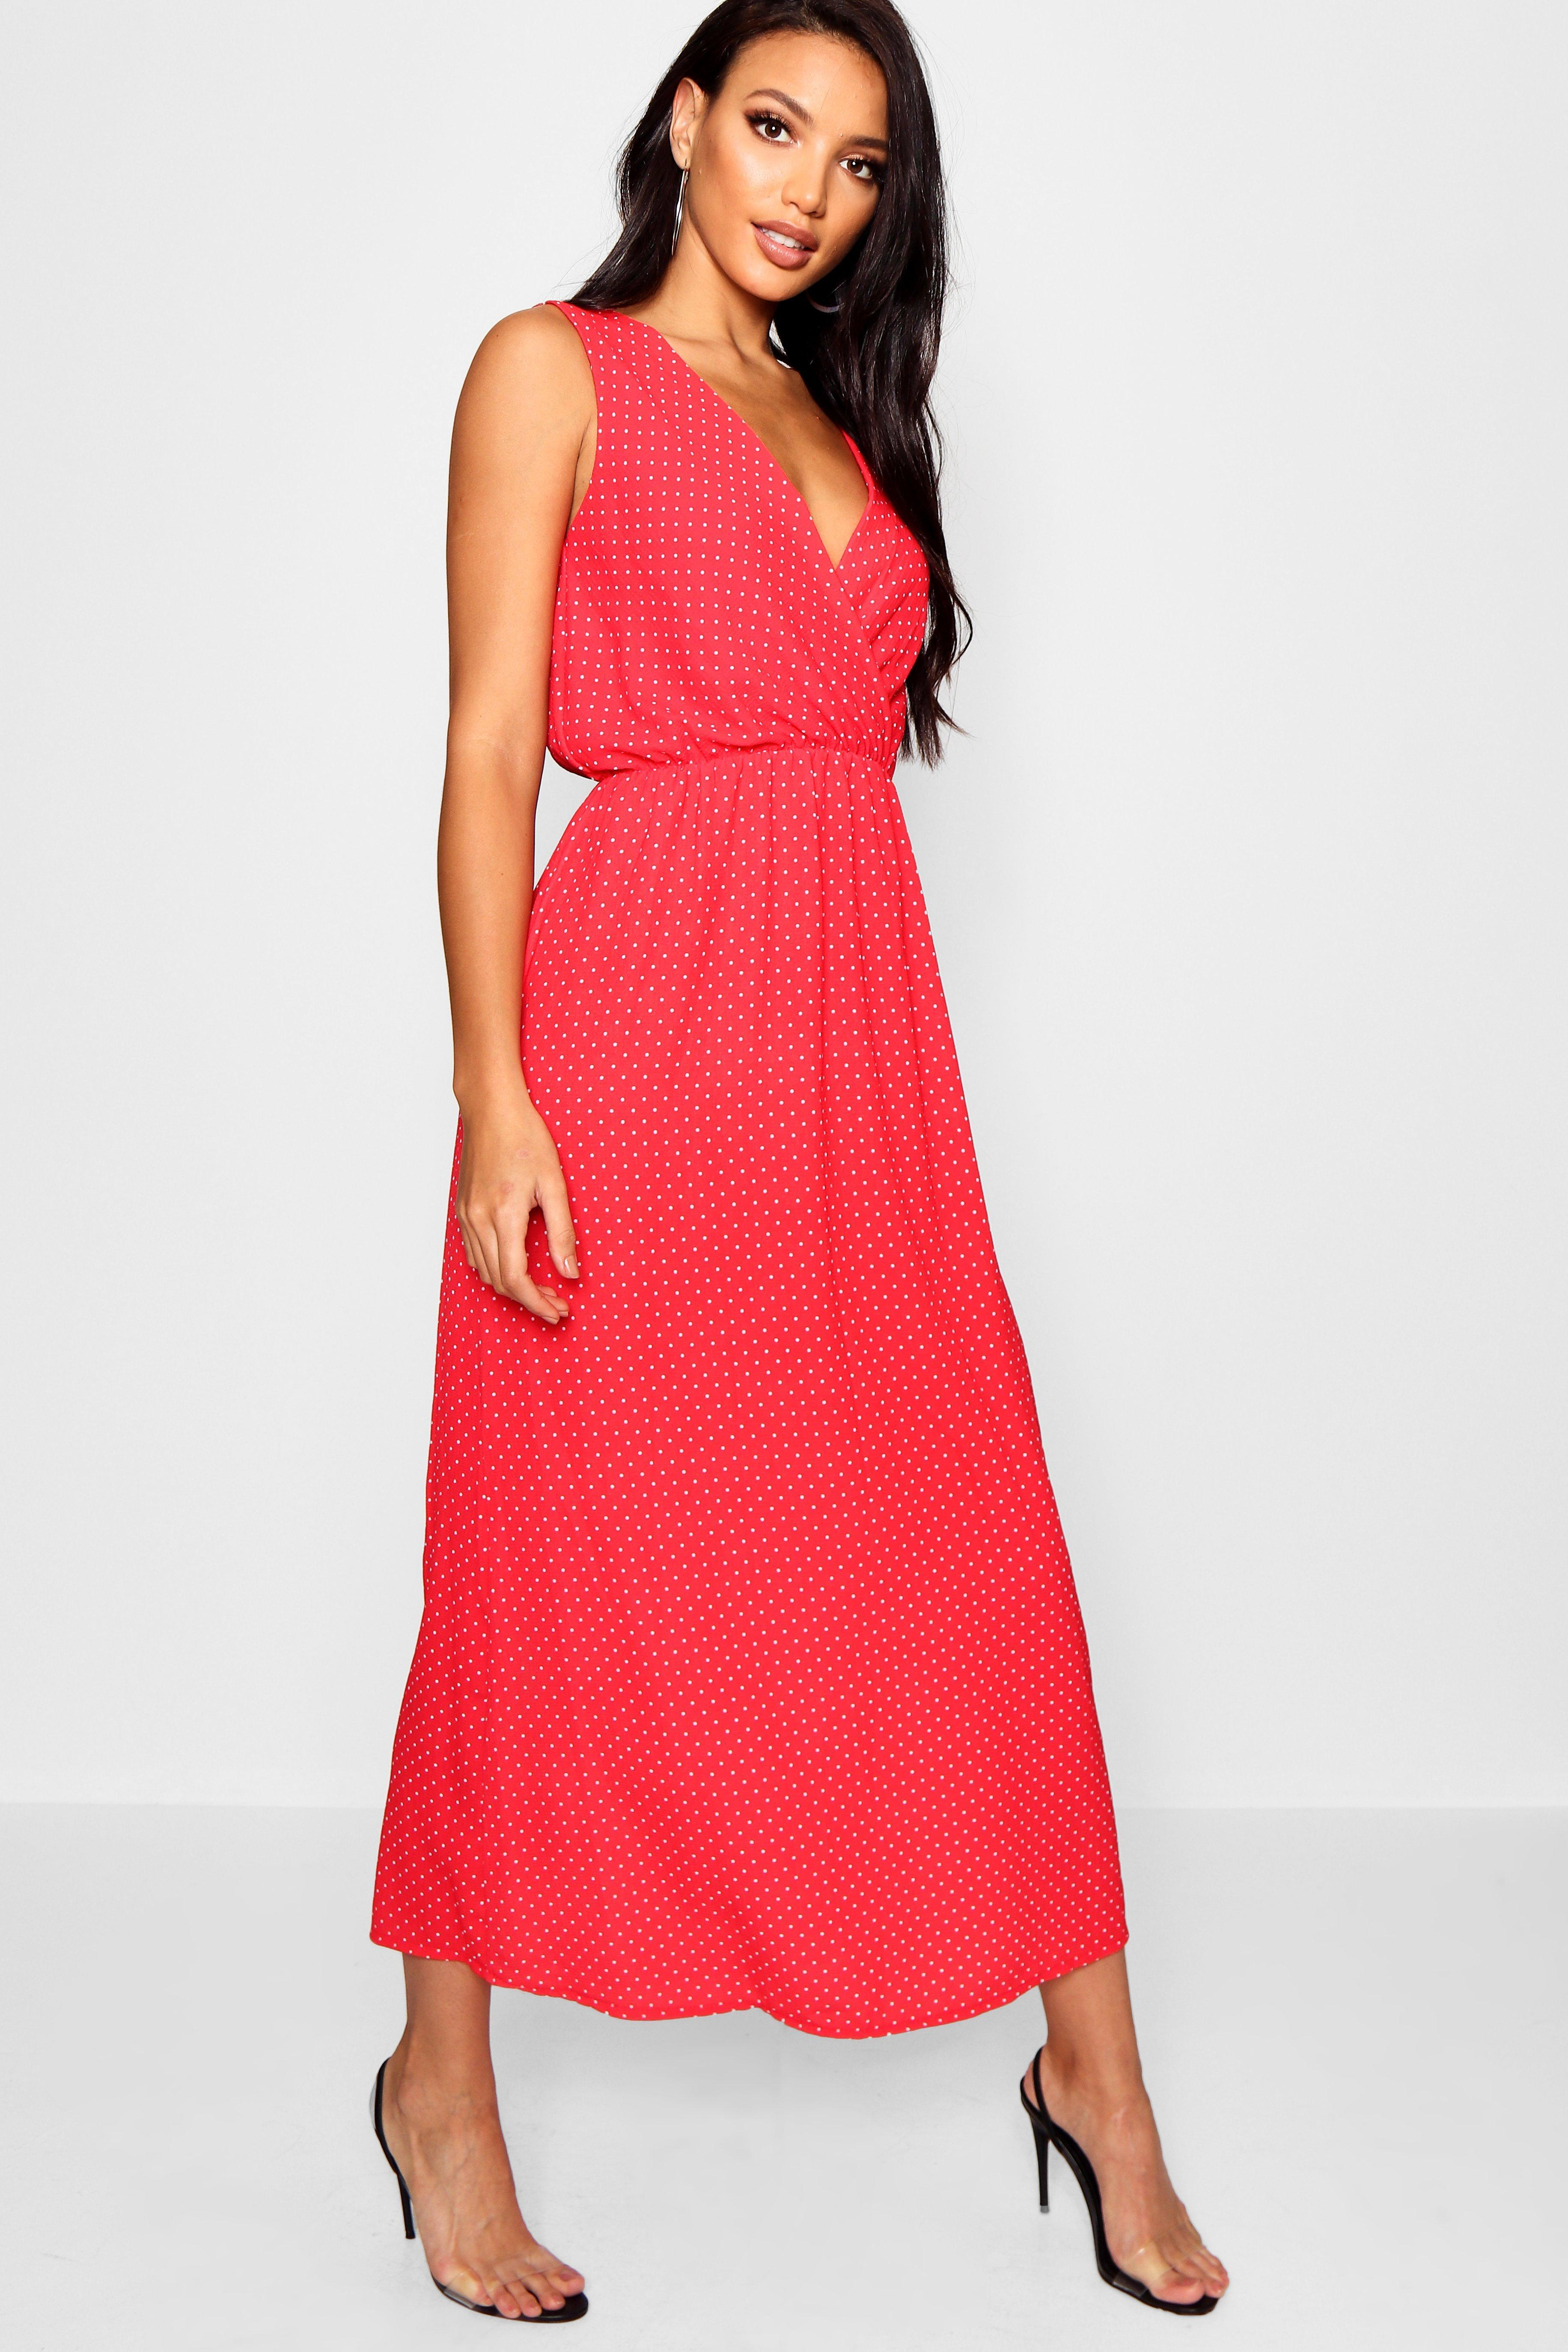 625c366e9ed0 Lyst - Boohoo Wrap Front Polka Dot Maxi Dress in Red